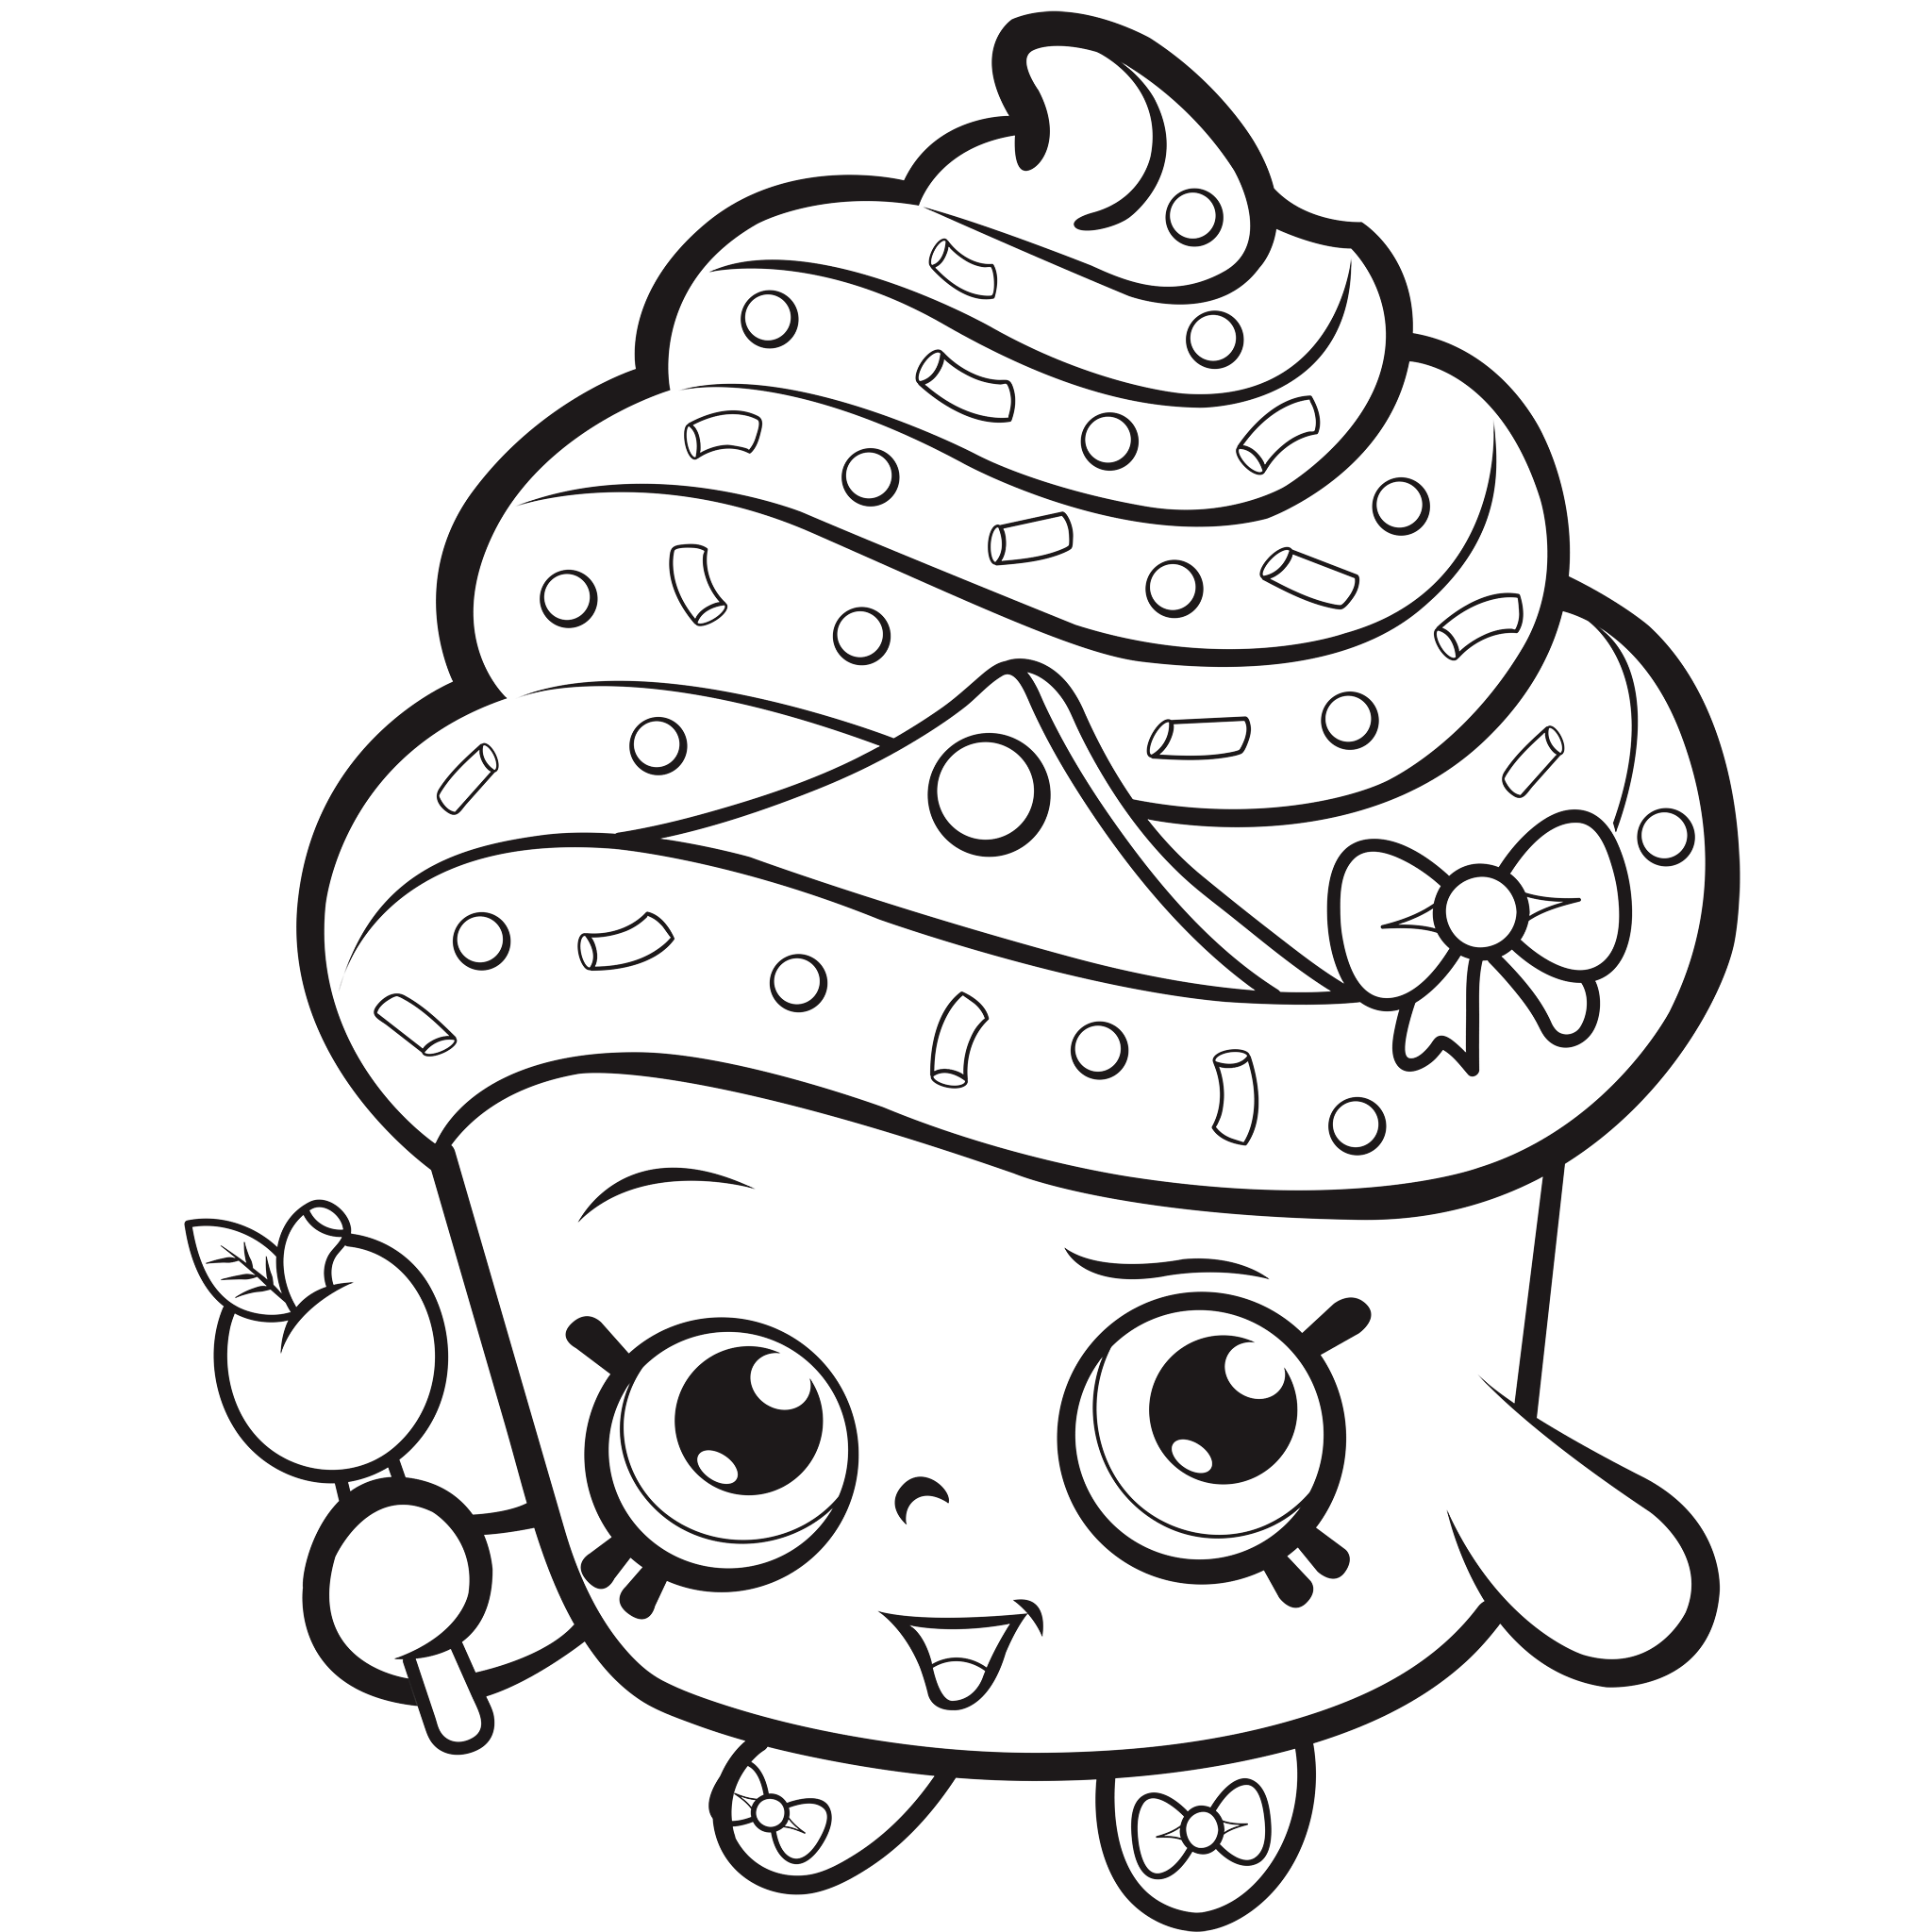 Coloring pages for 7th graders - Shopkins Coloring Pages